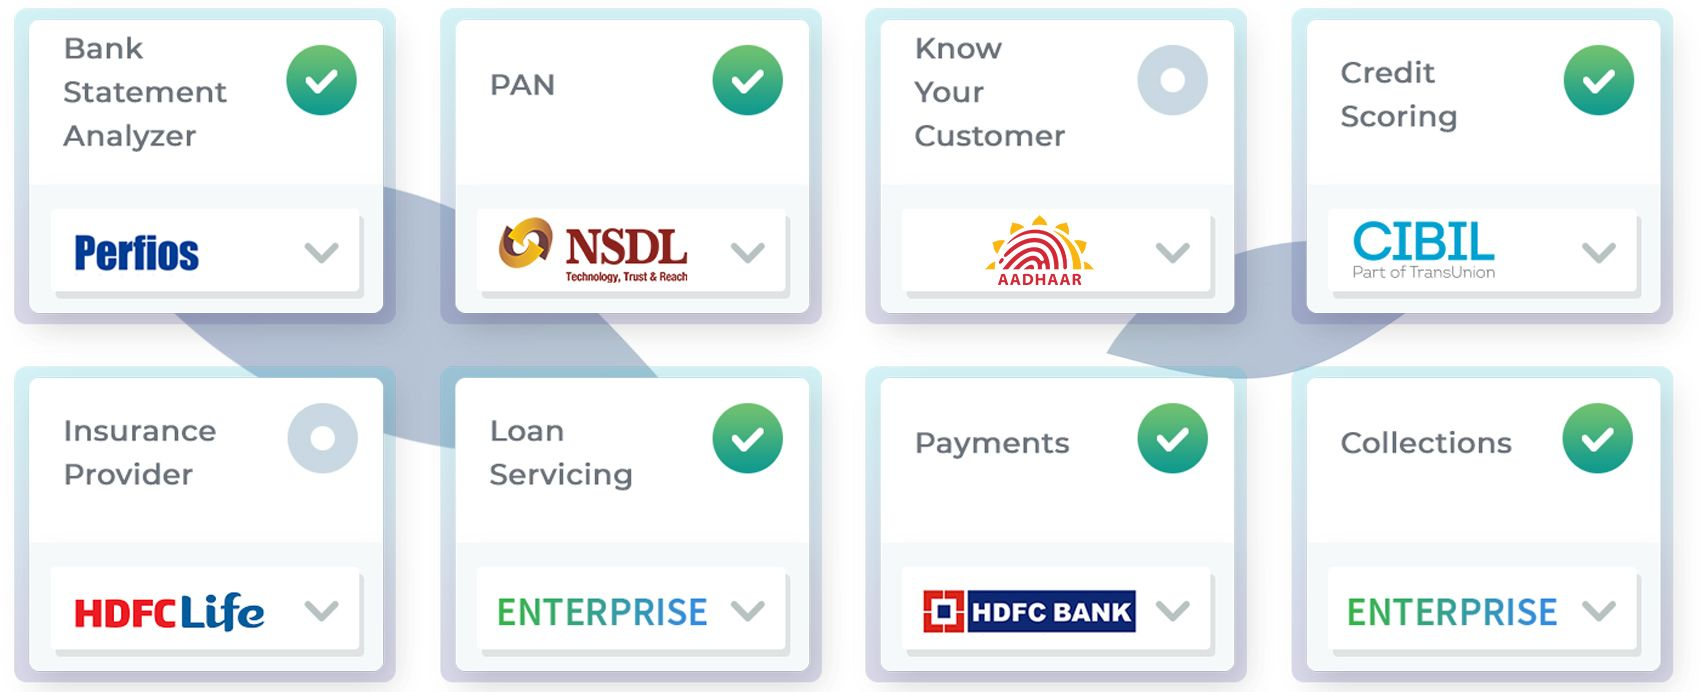 Loan Servicing Software In 2020 Financial Institutions Task Management Credit Risk Analysis